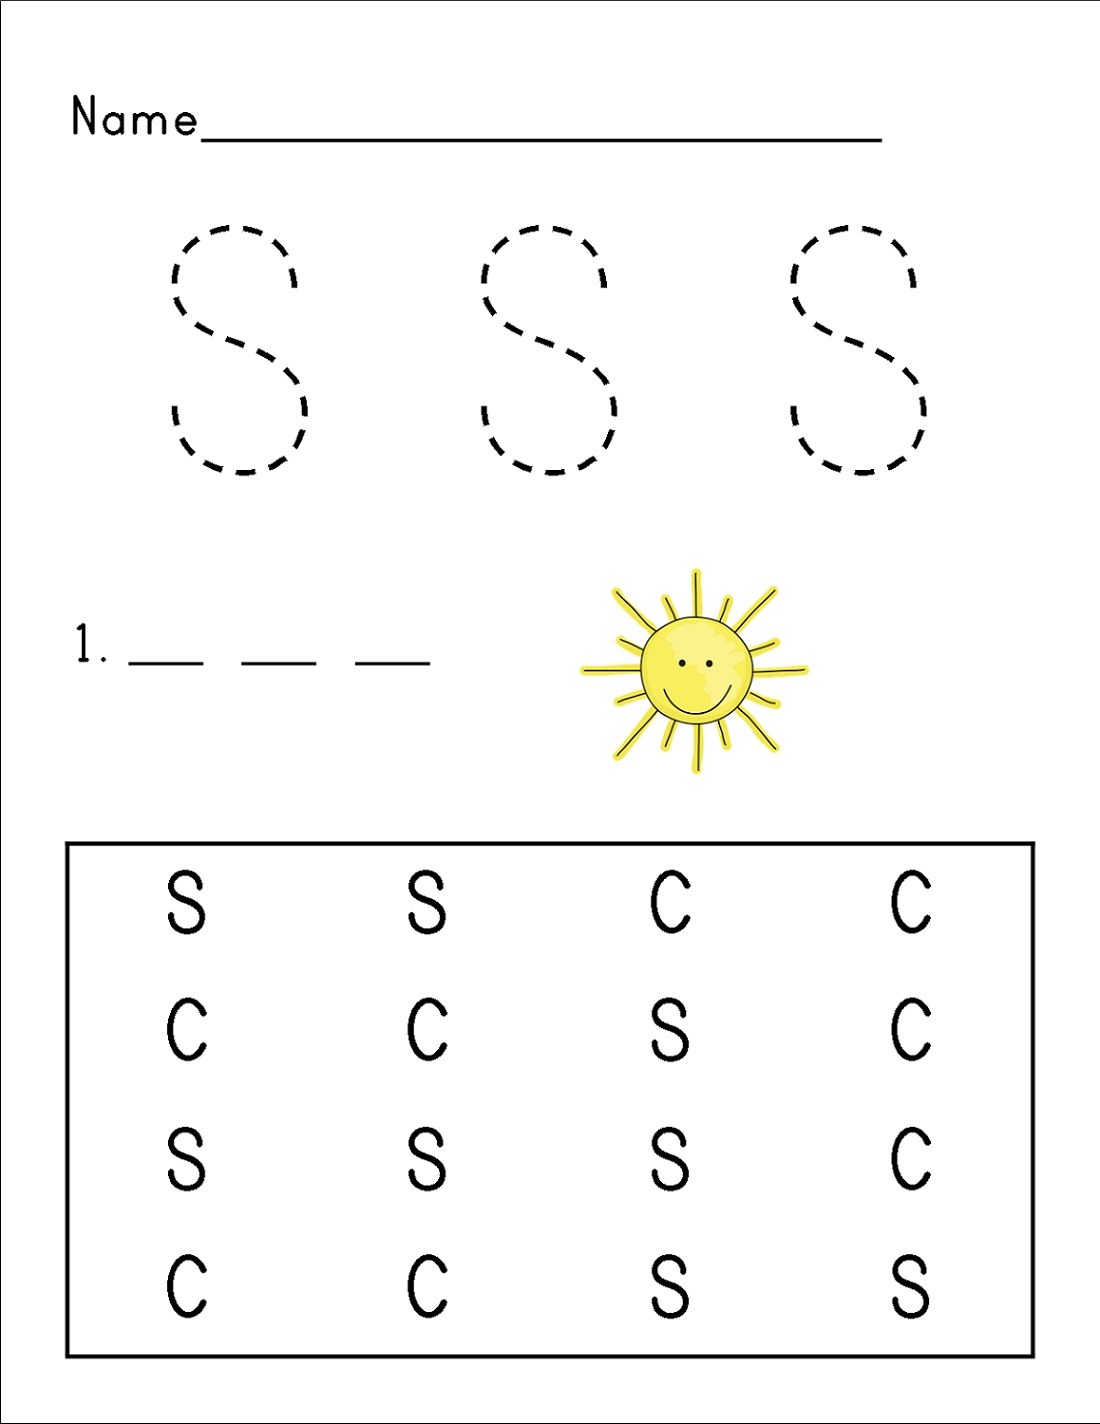 Printable Letter S Worksheets For Kids